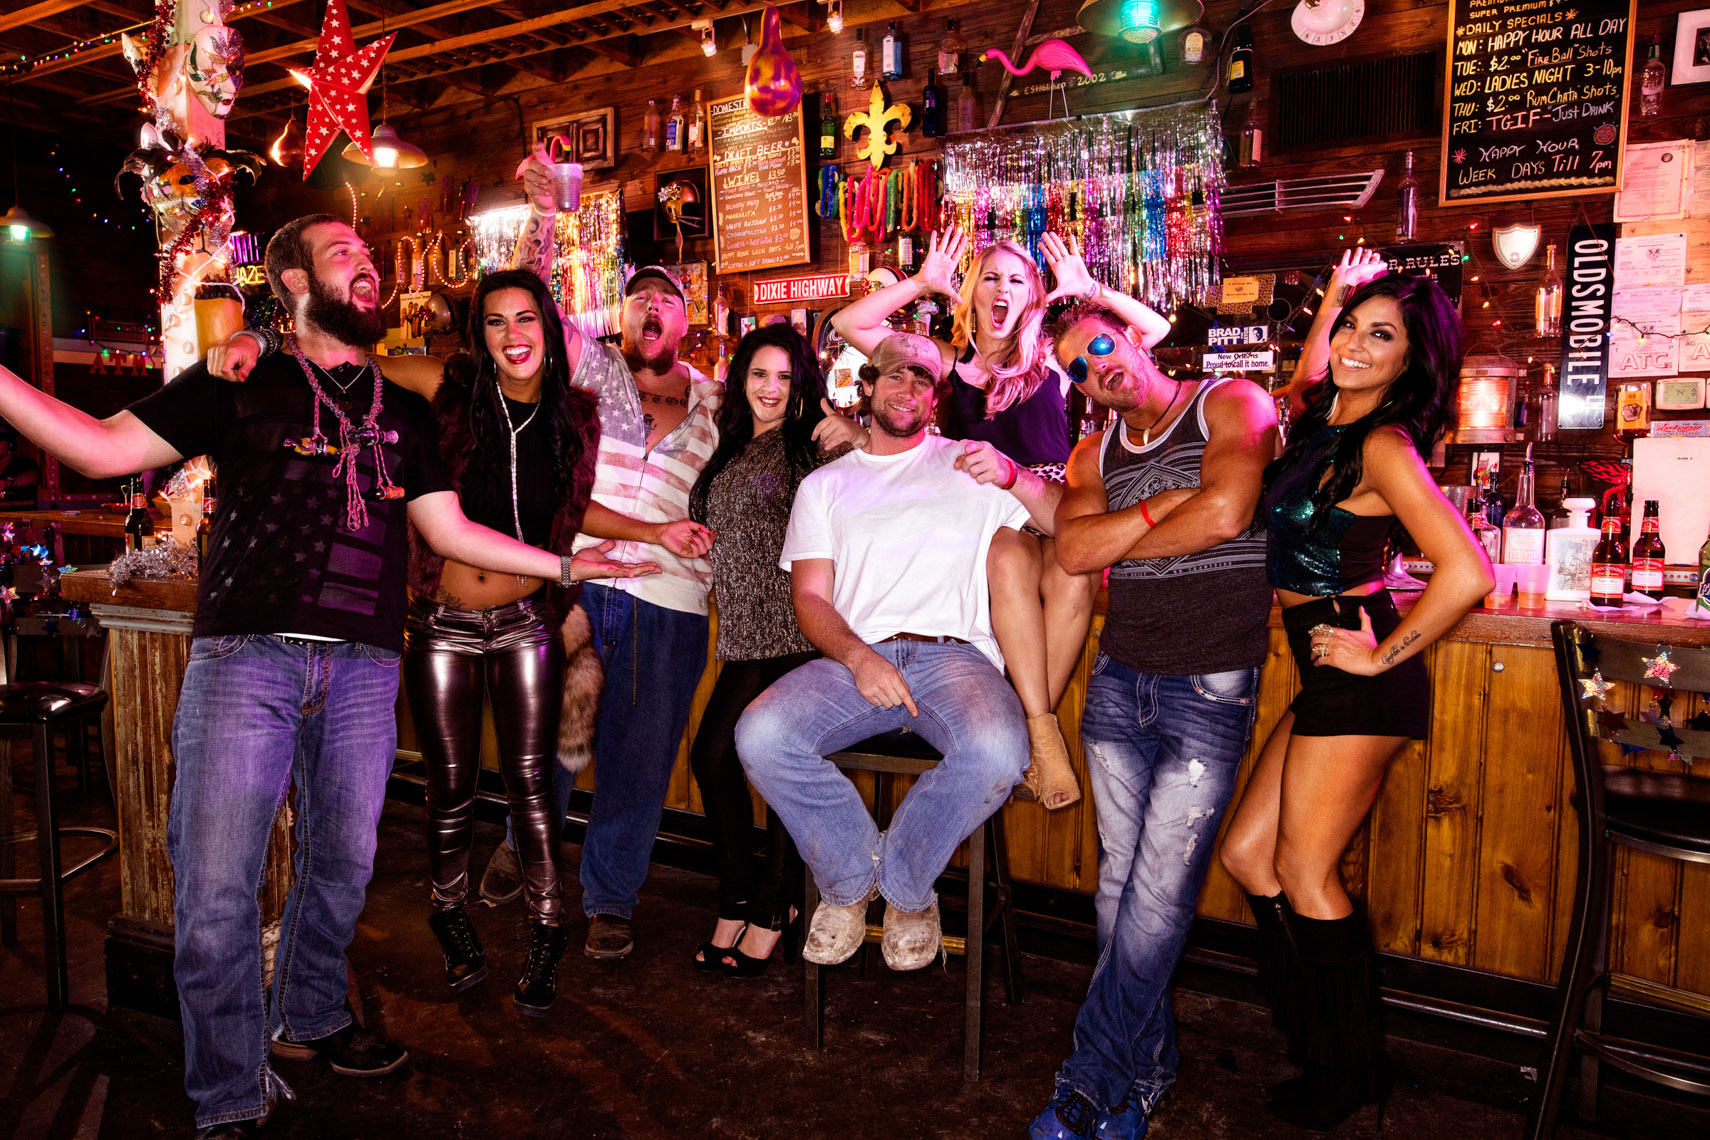 Party Down South reality television on CMT